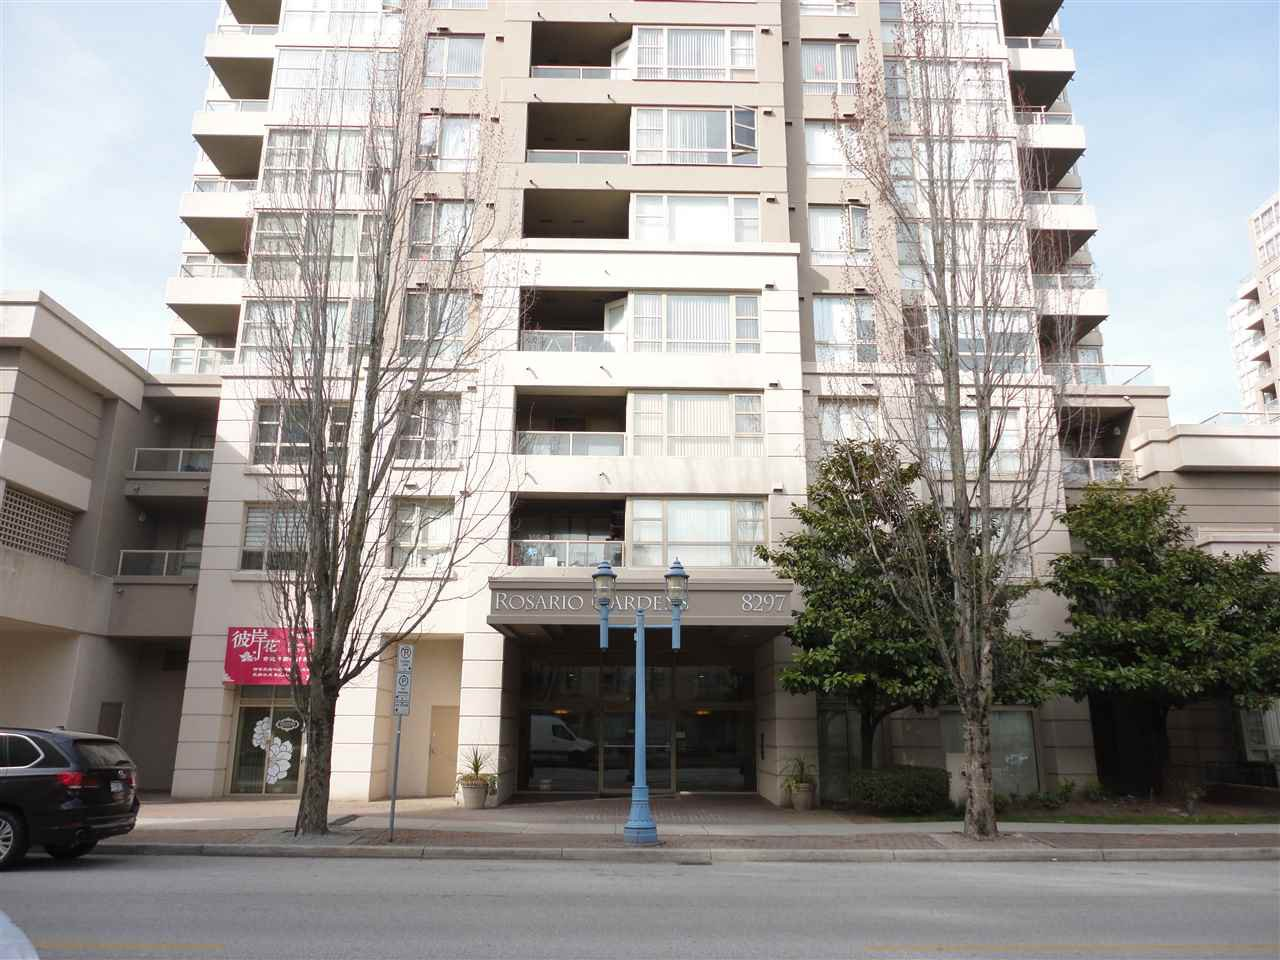 "Main Photo: 205 8297 SABA Road in Richmond: Brighouse Condo for sale in ""ROSARIO GARDENS"" : MLS®# R2430603"